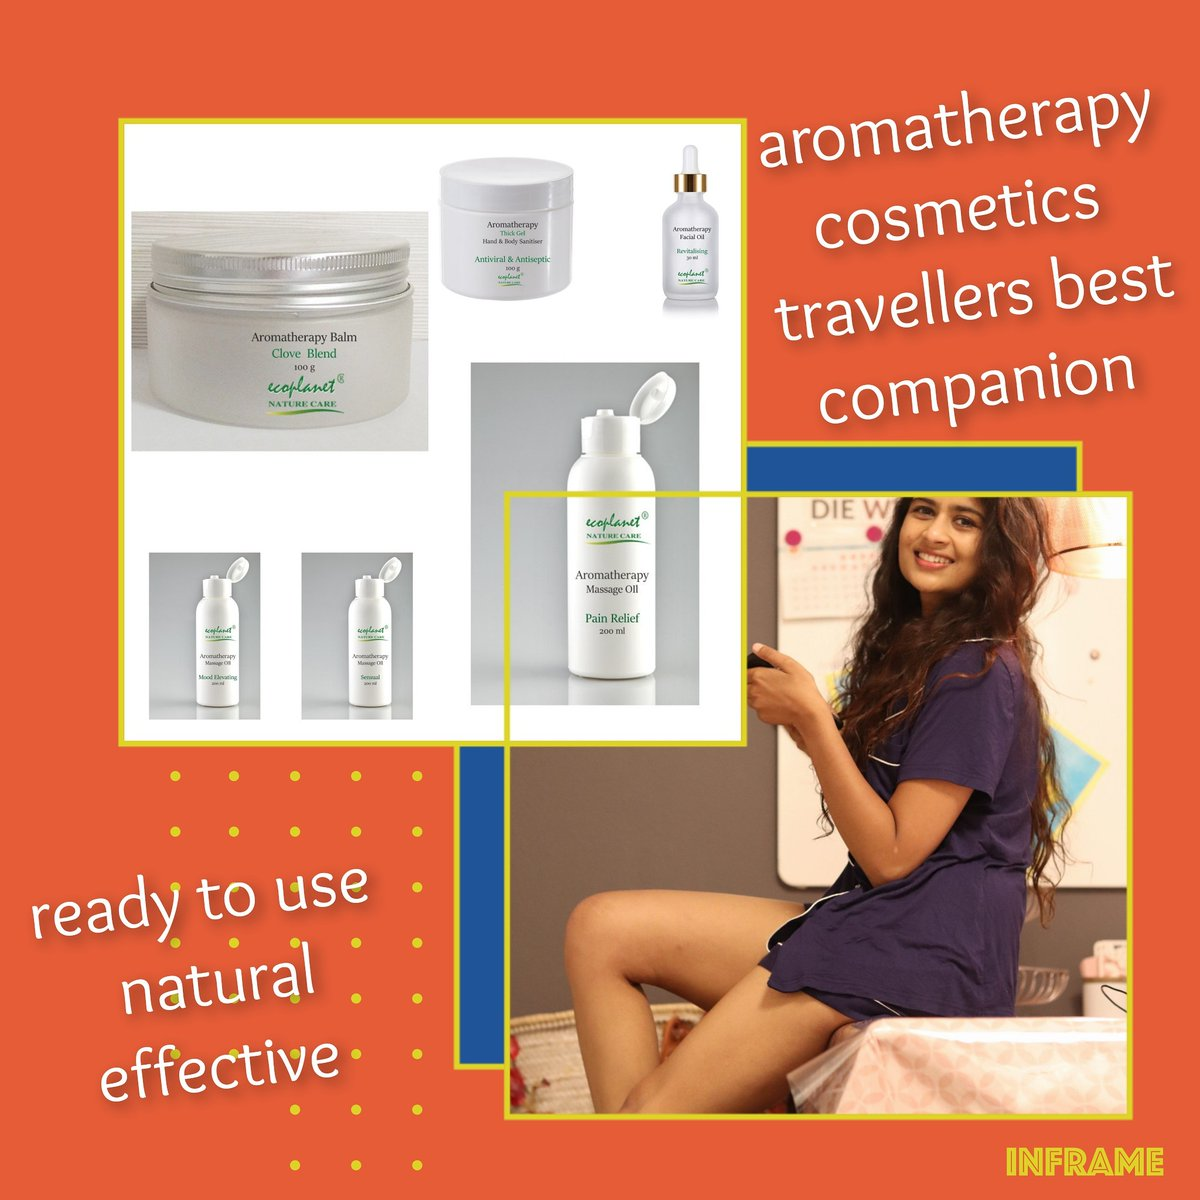 #ecoplanet #aromatherapy #cosmetics #travellers #companion https://t.co/Zsv9s4q615